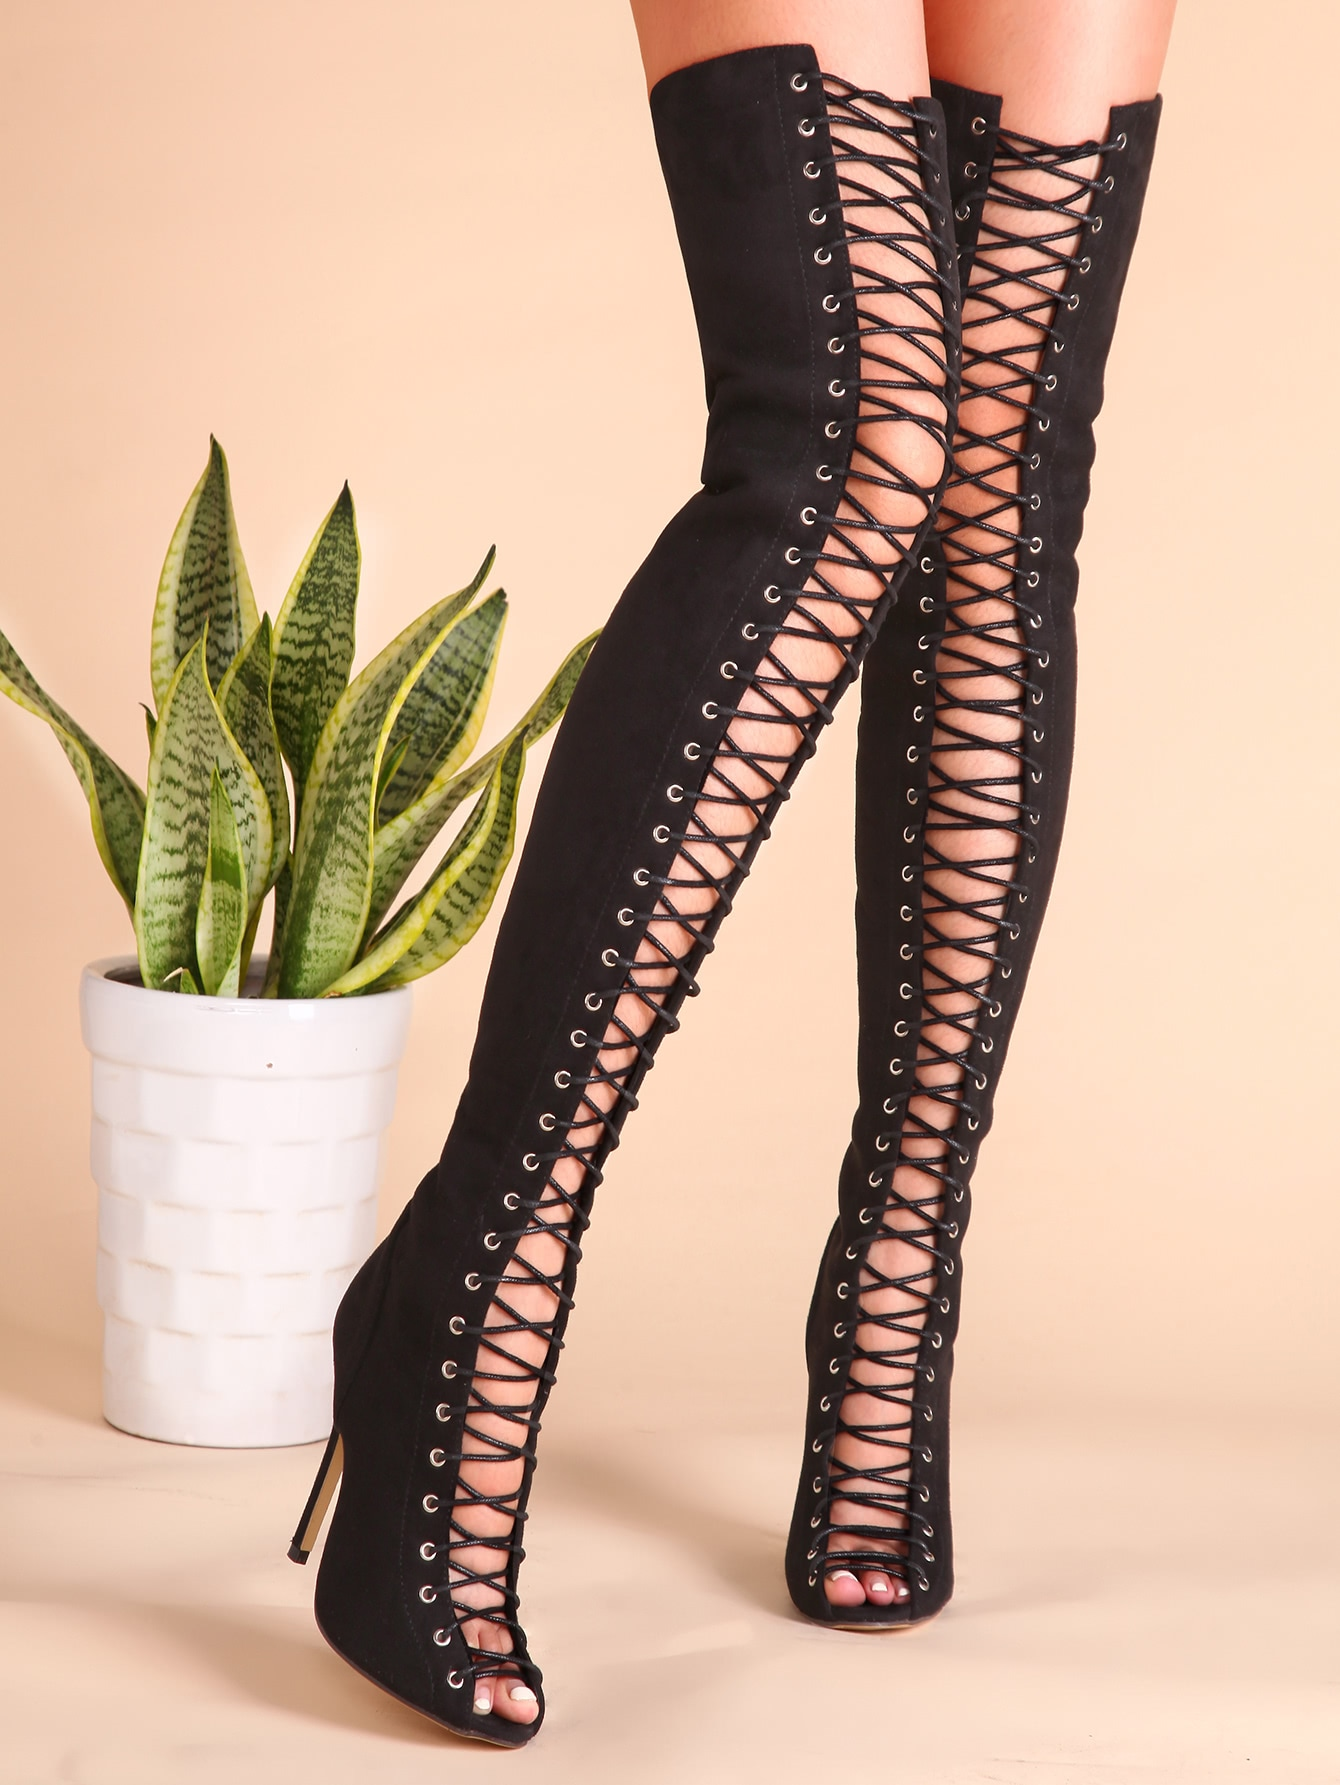 Black Sexy Criss Cross Lace Up Suede Thigh High Boots shoes161115805